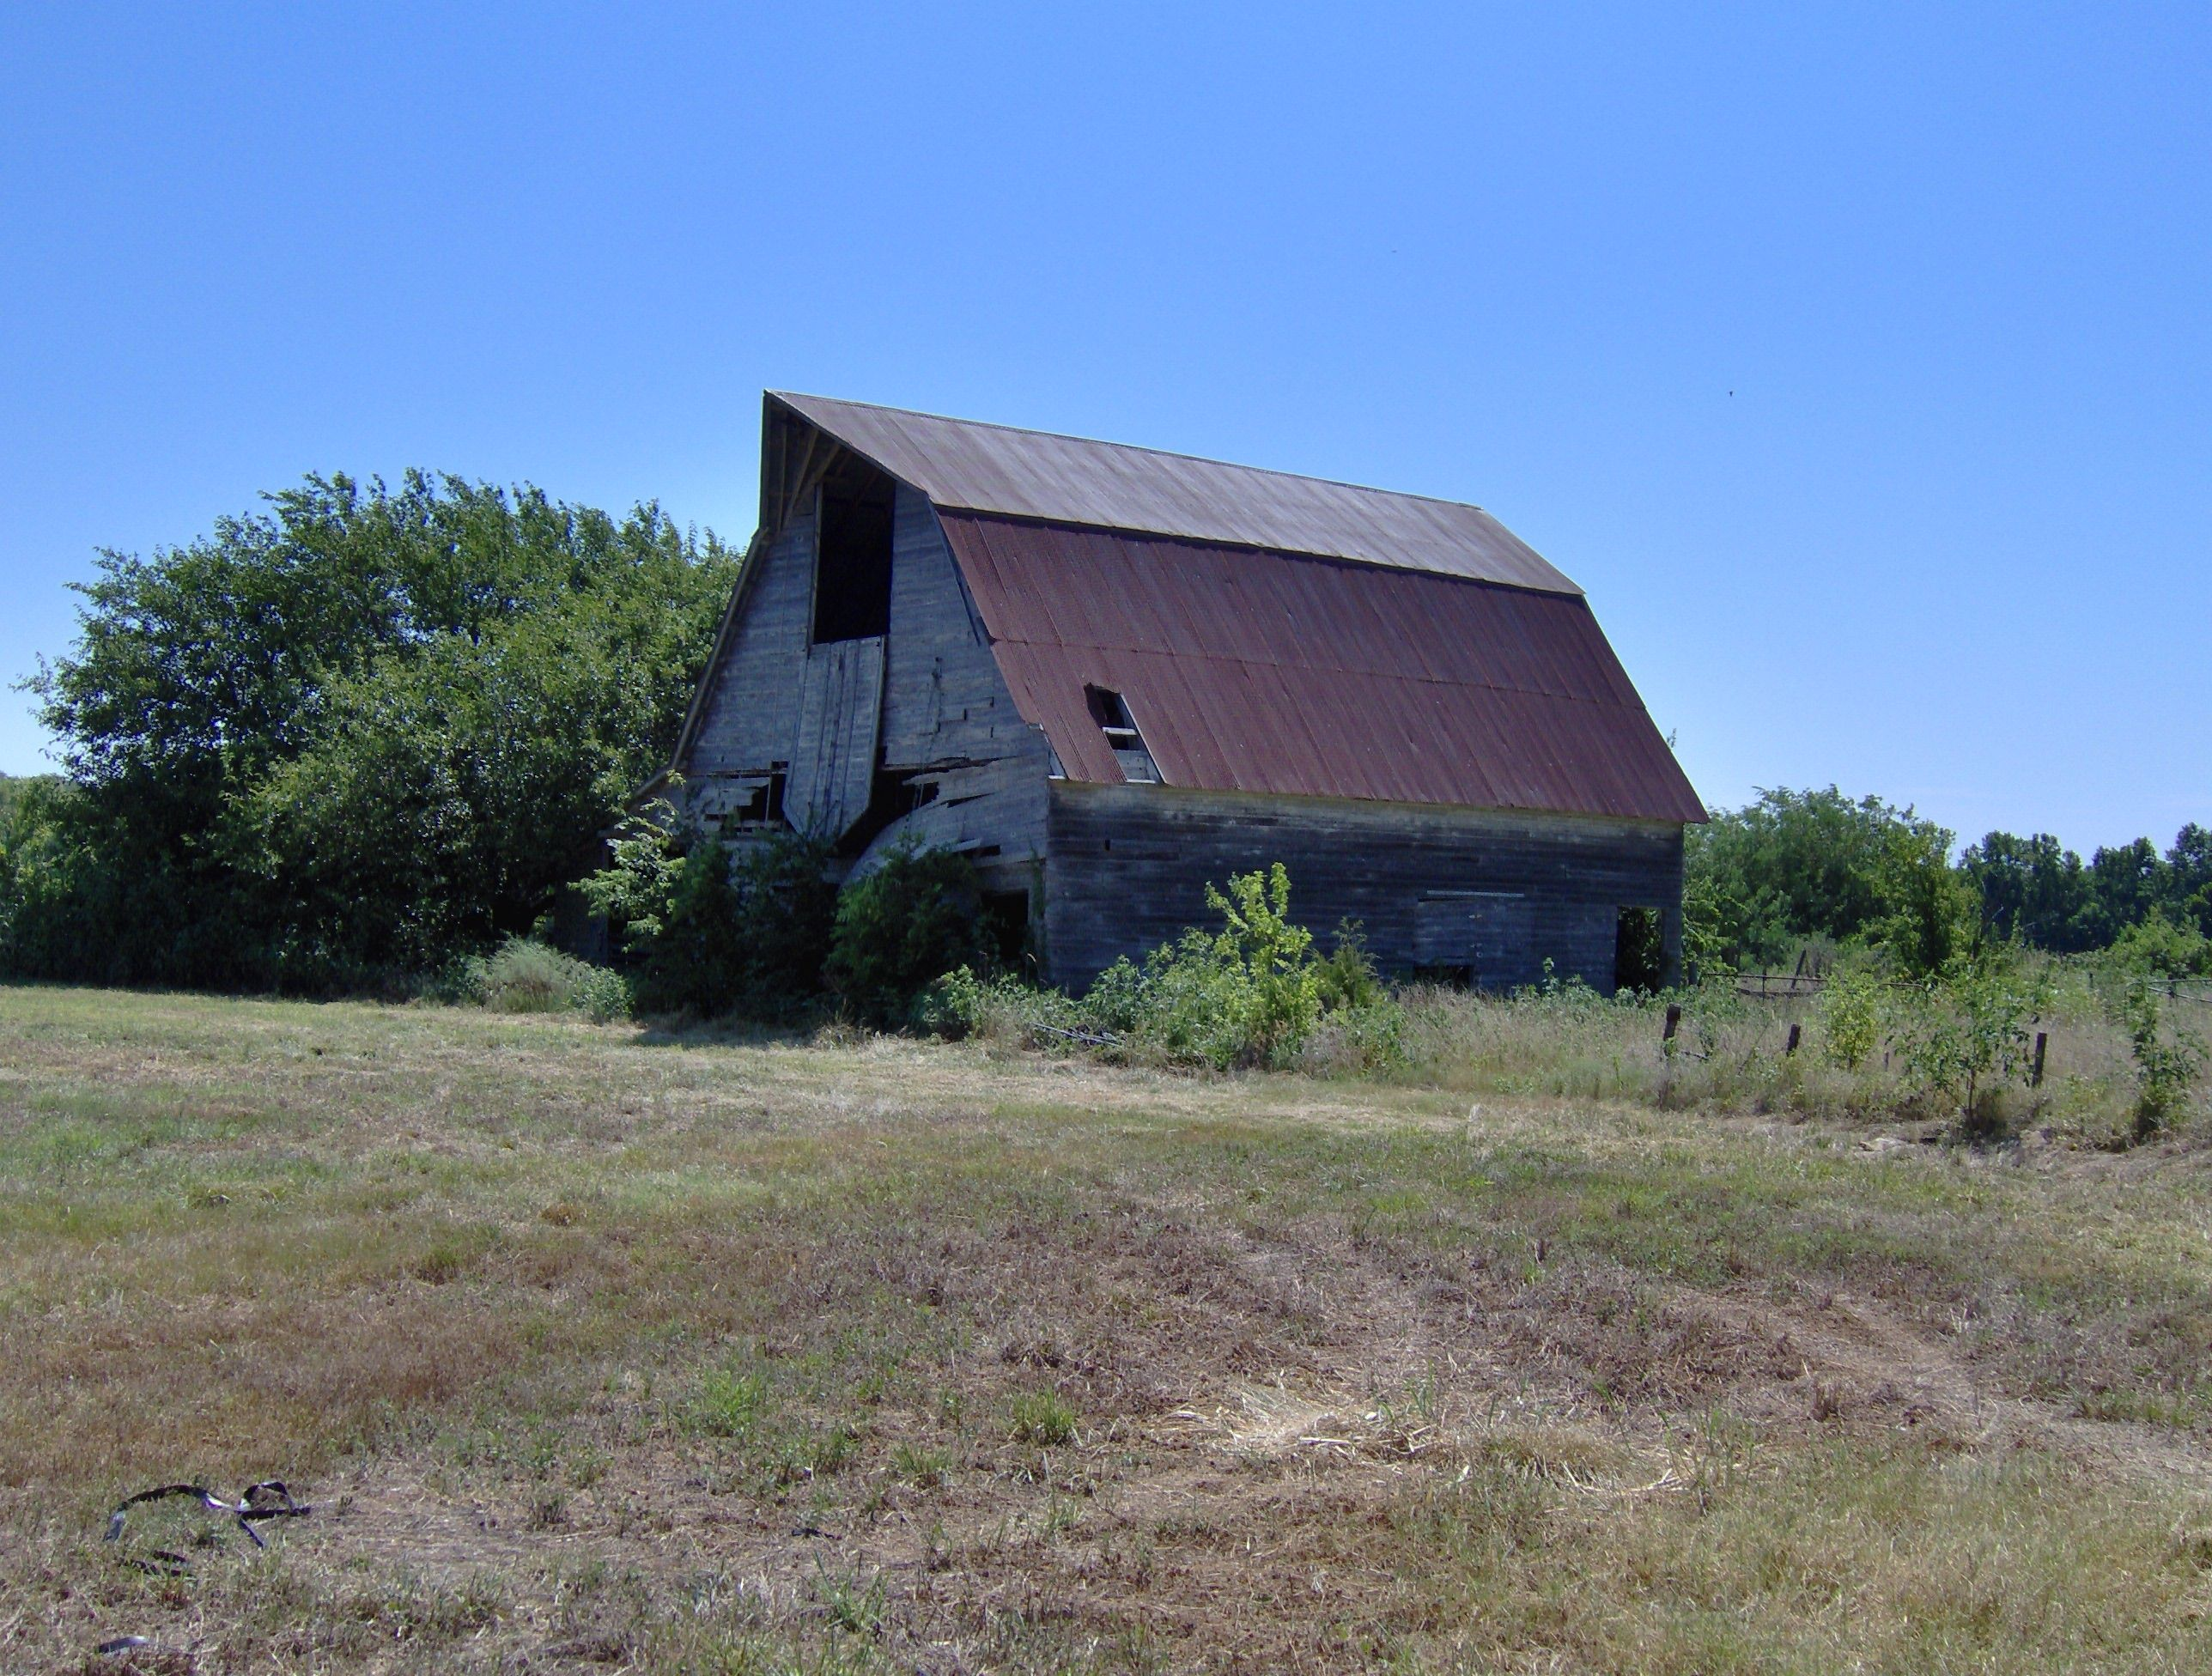 Another country drive and came across this abandon barn of the past.